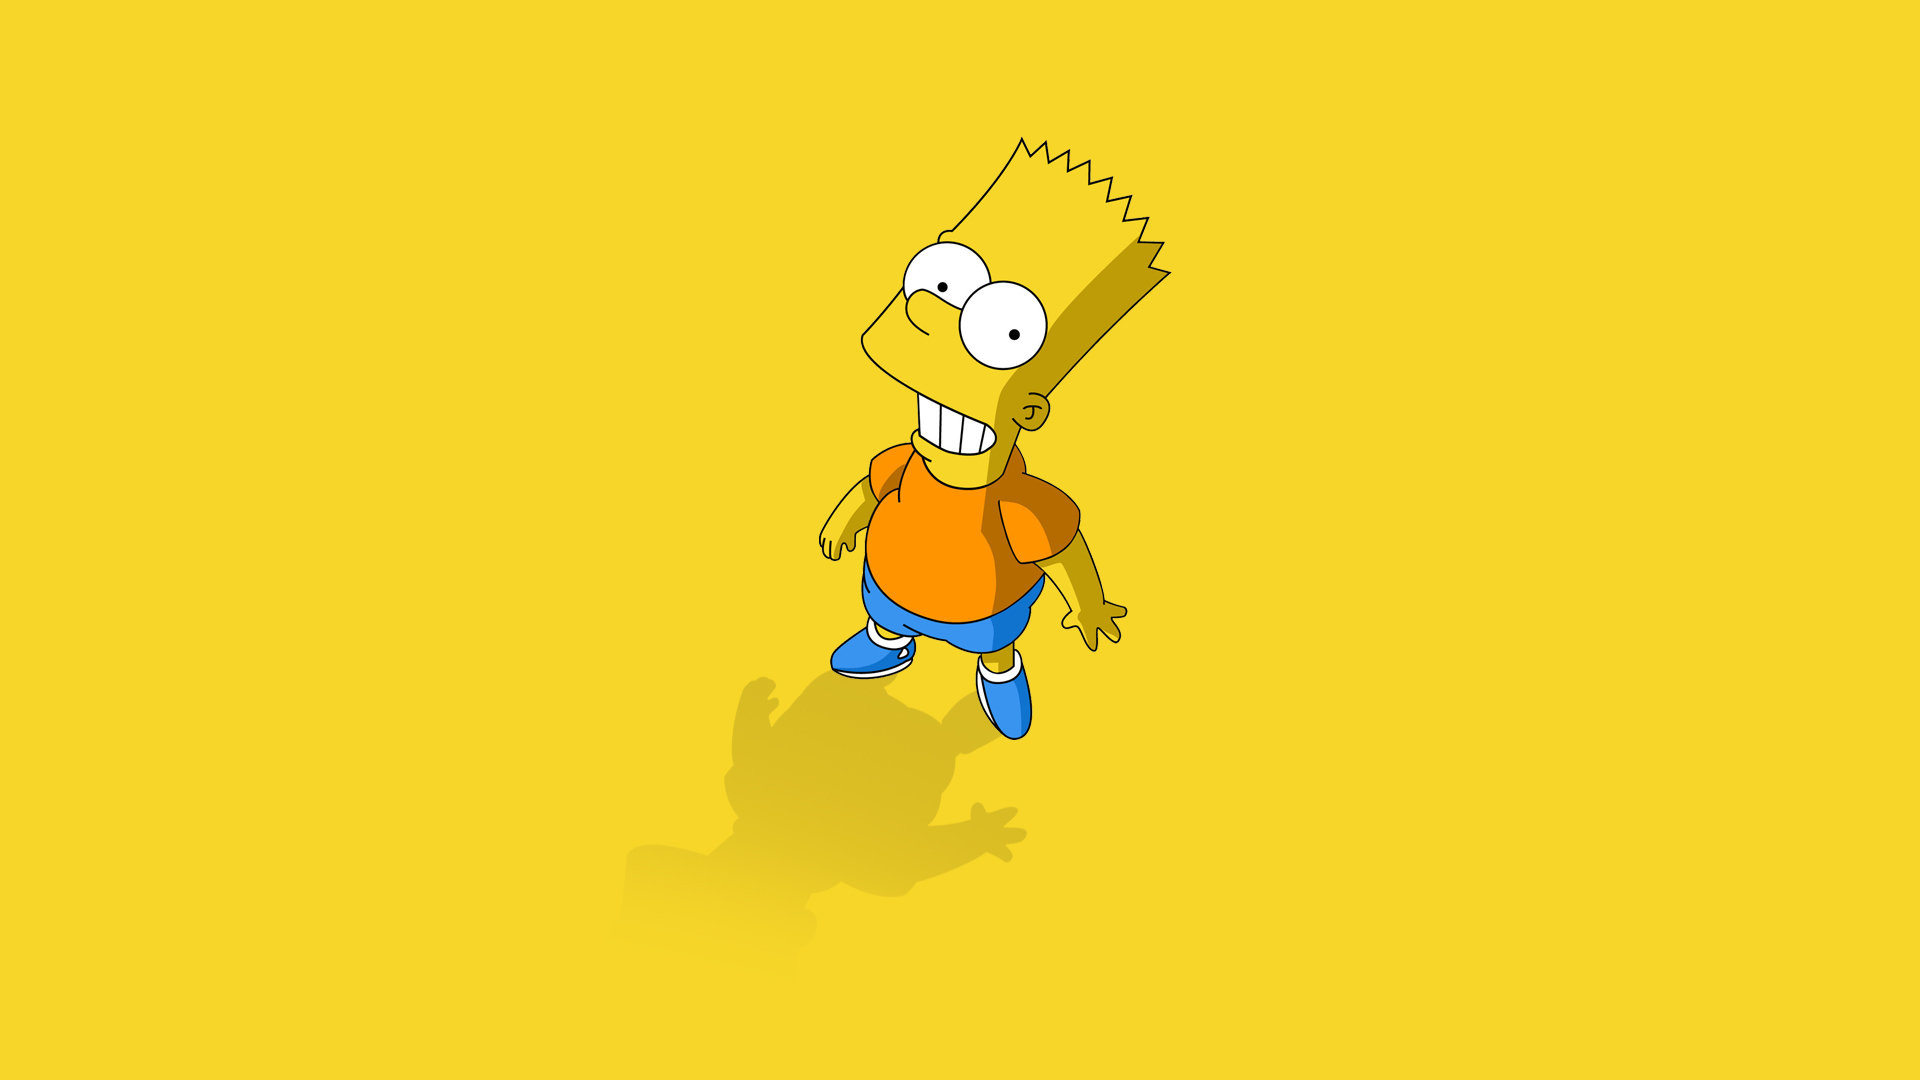 Download Full Hd 1920x1080 Bart Simpson PC Background ID351659 For Free